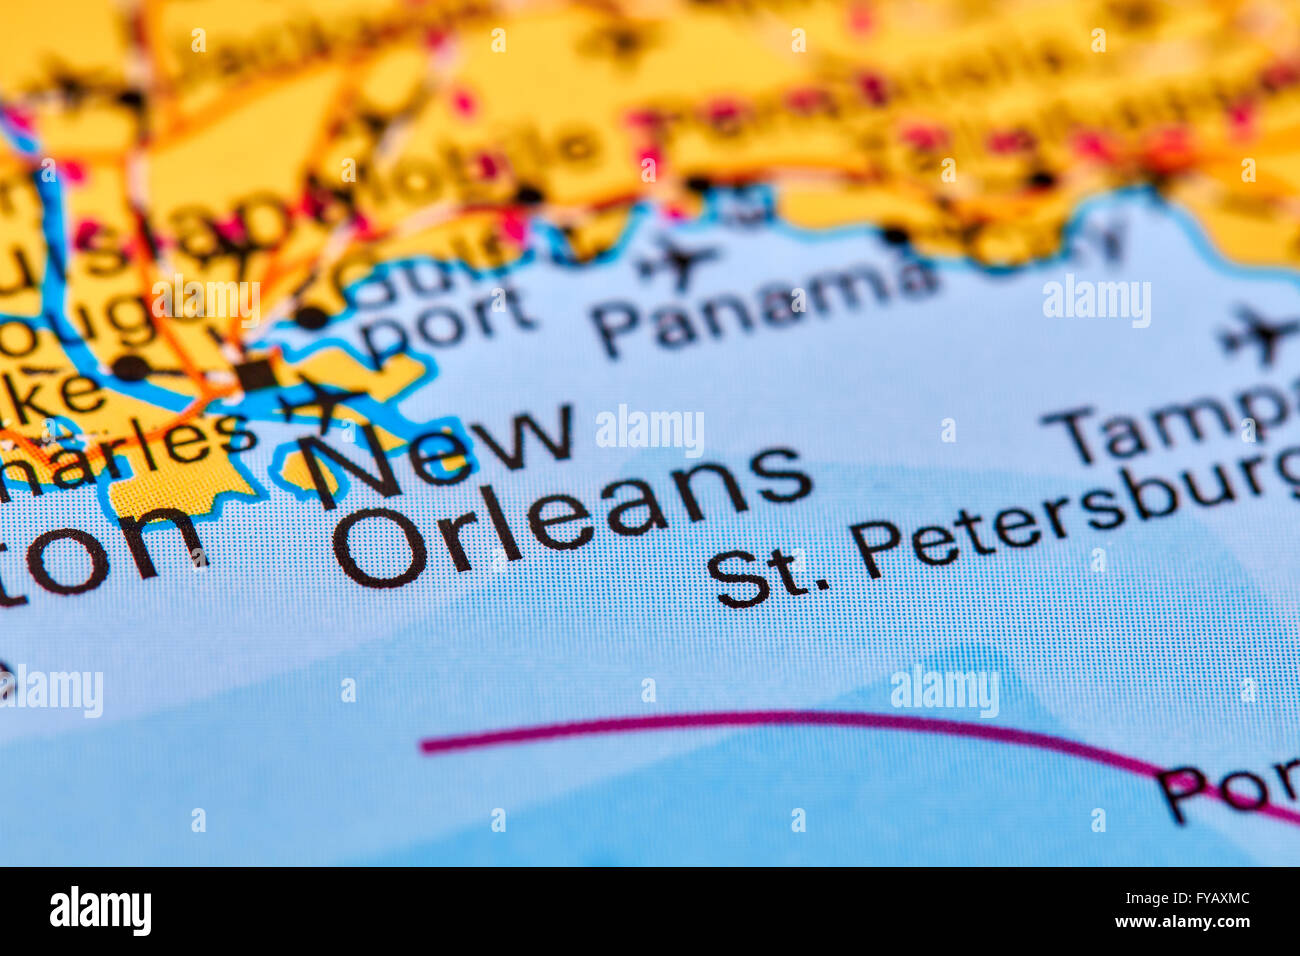 New Orleans In Usa Map.New Orleans City In Usa On The World Map Stock Photo 102888028 Alamy